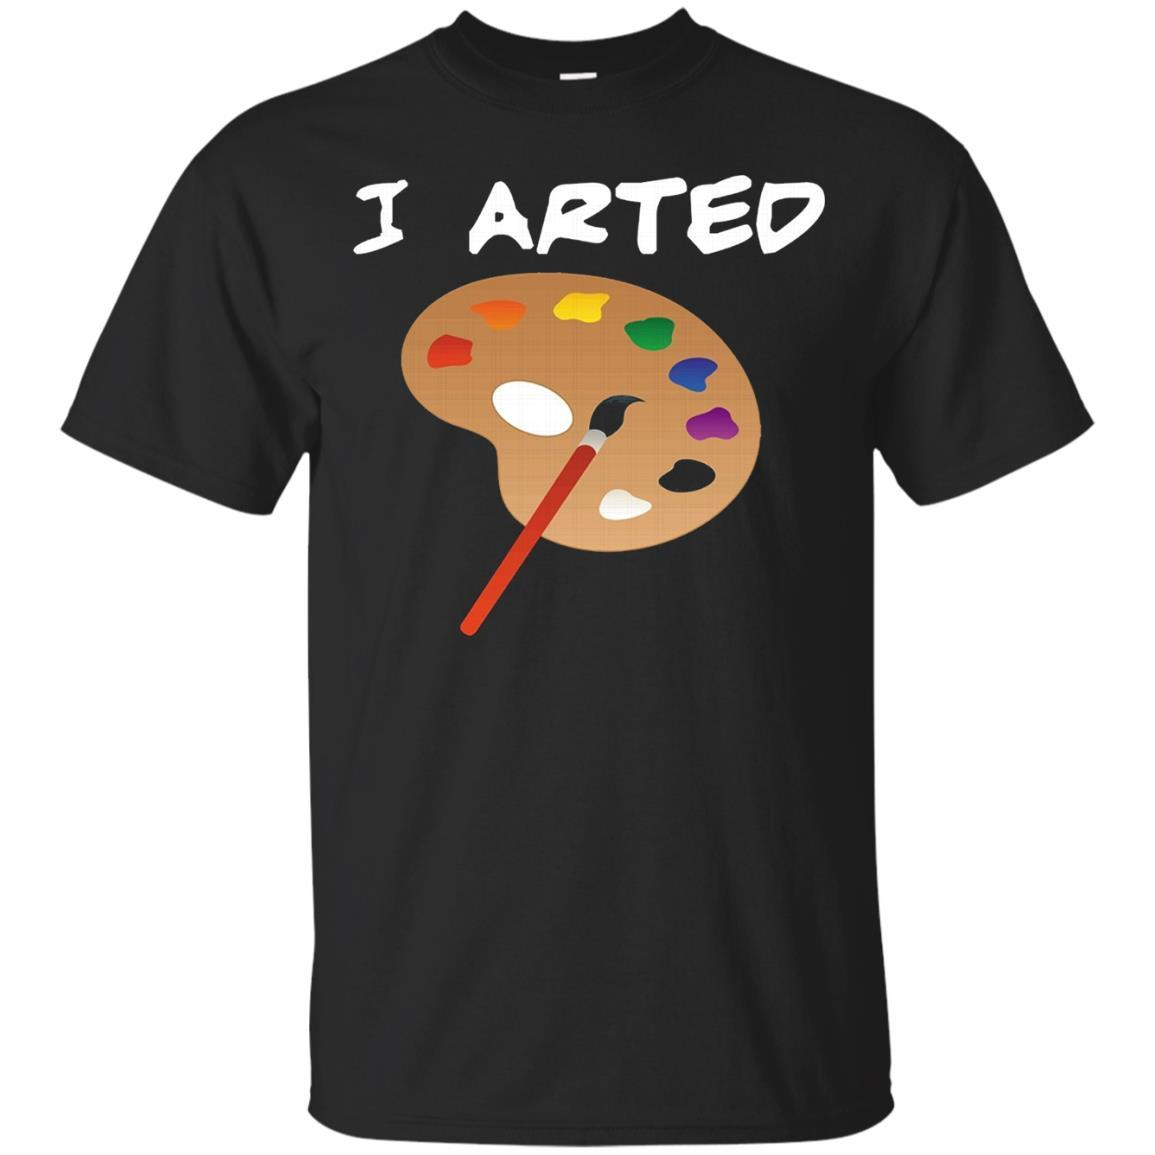 I Arted Shirt. Funny Artist Shirts.